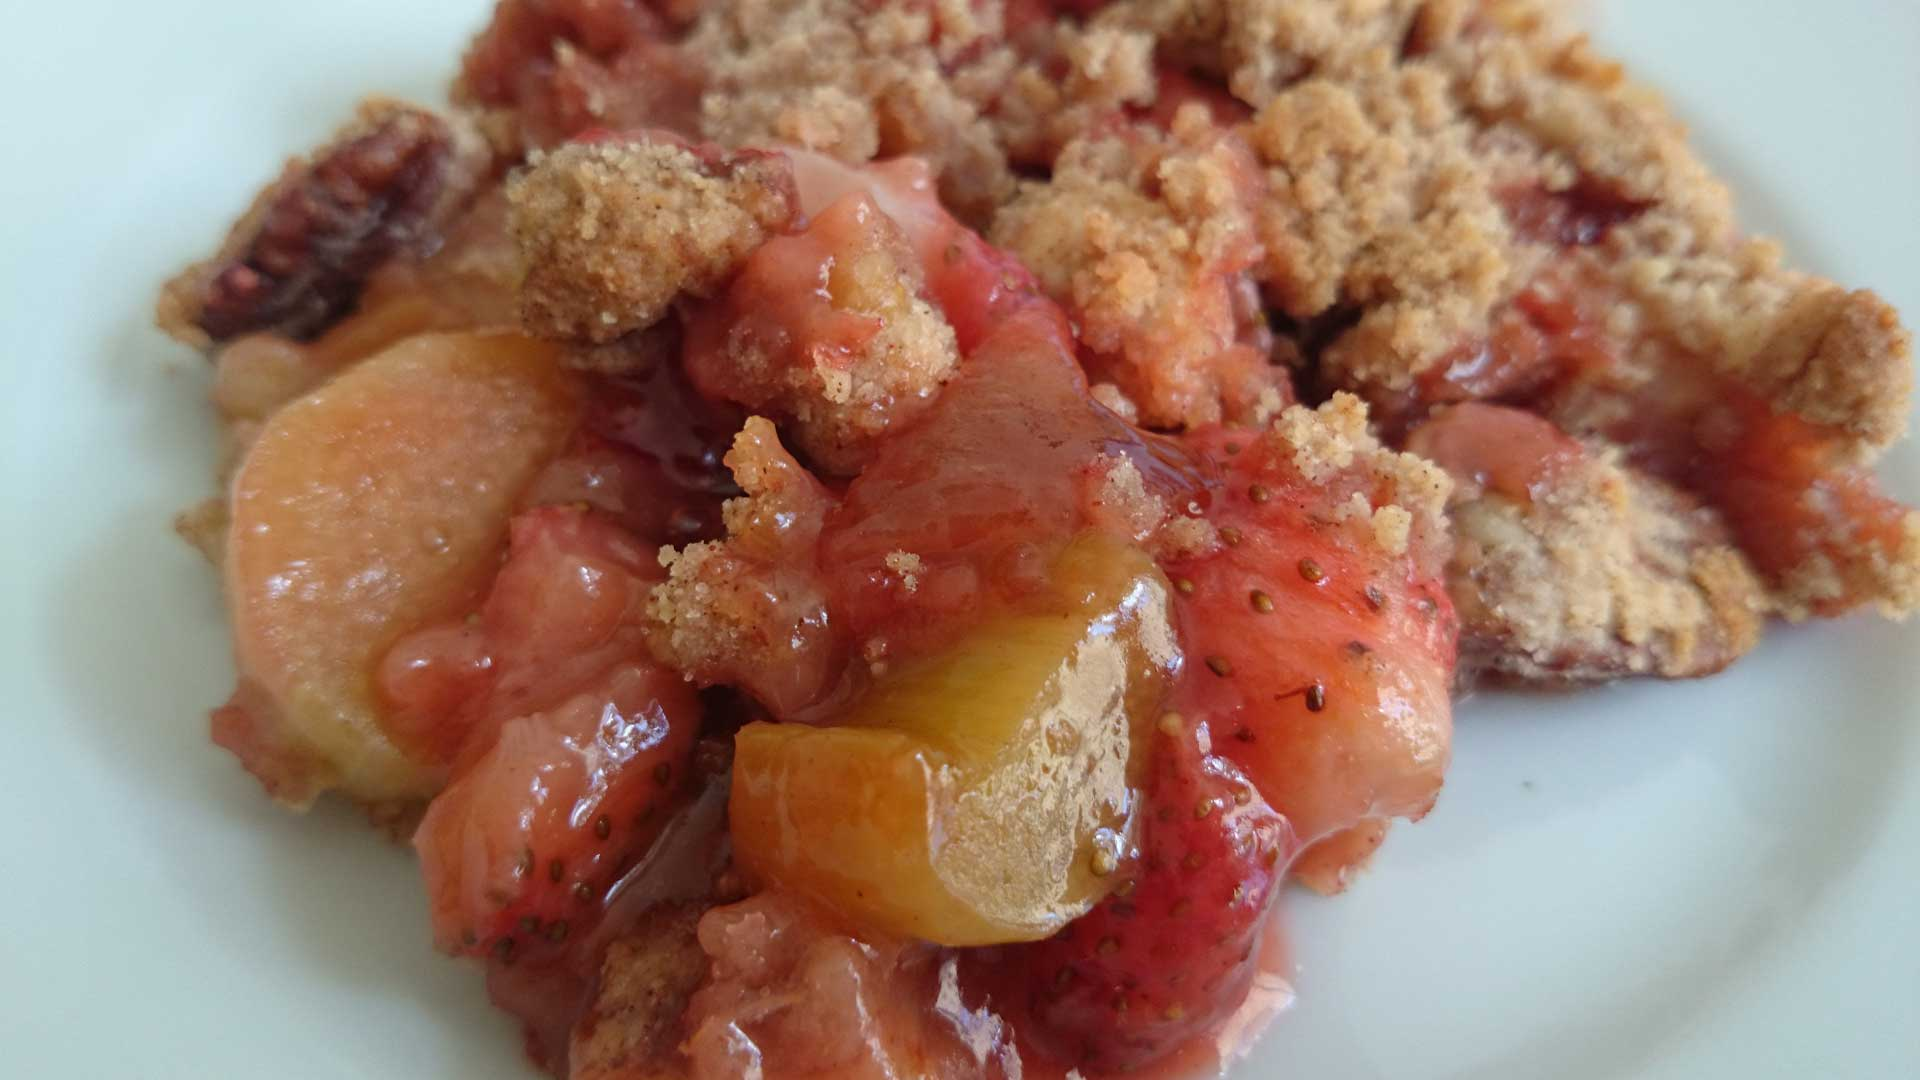 Sugar-free rhubarb strawberry crumble